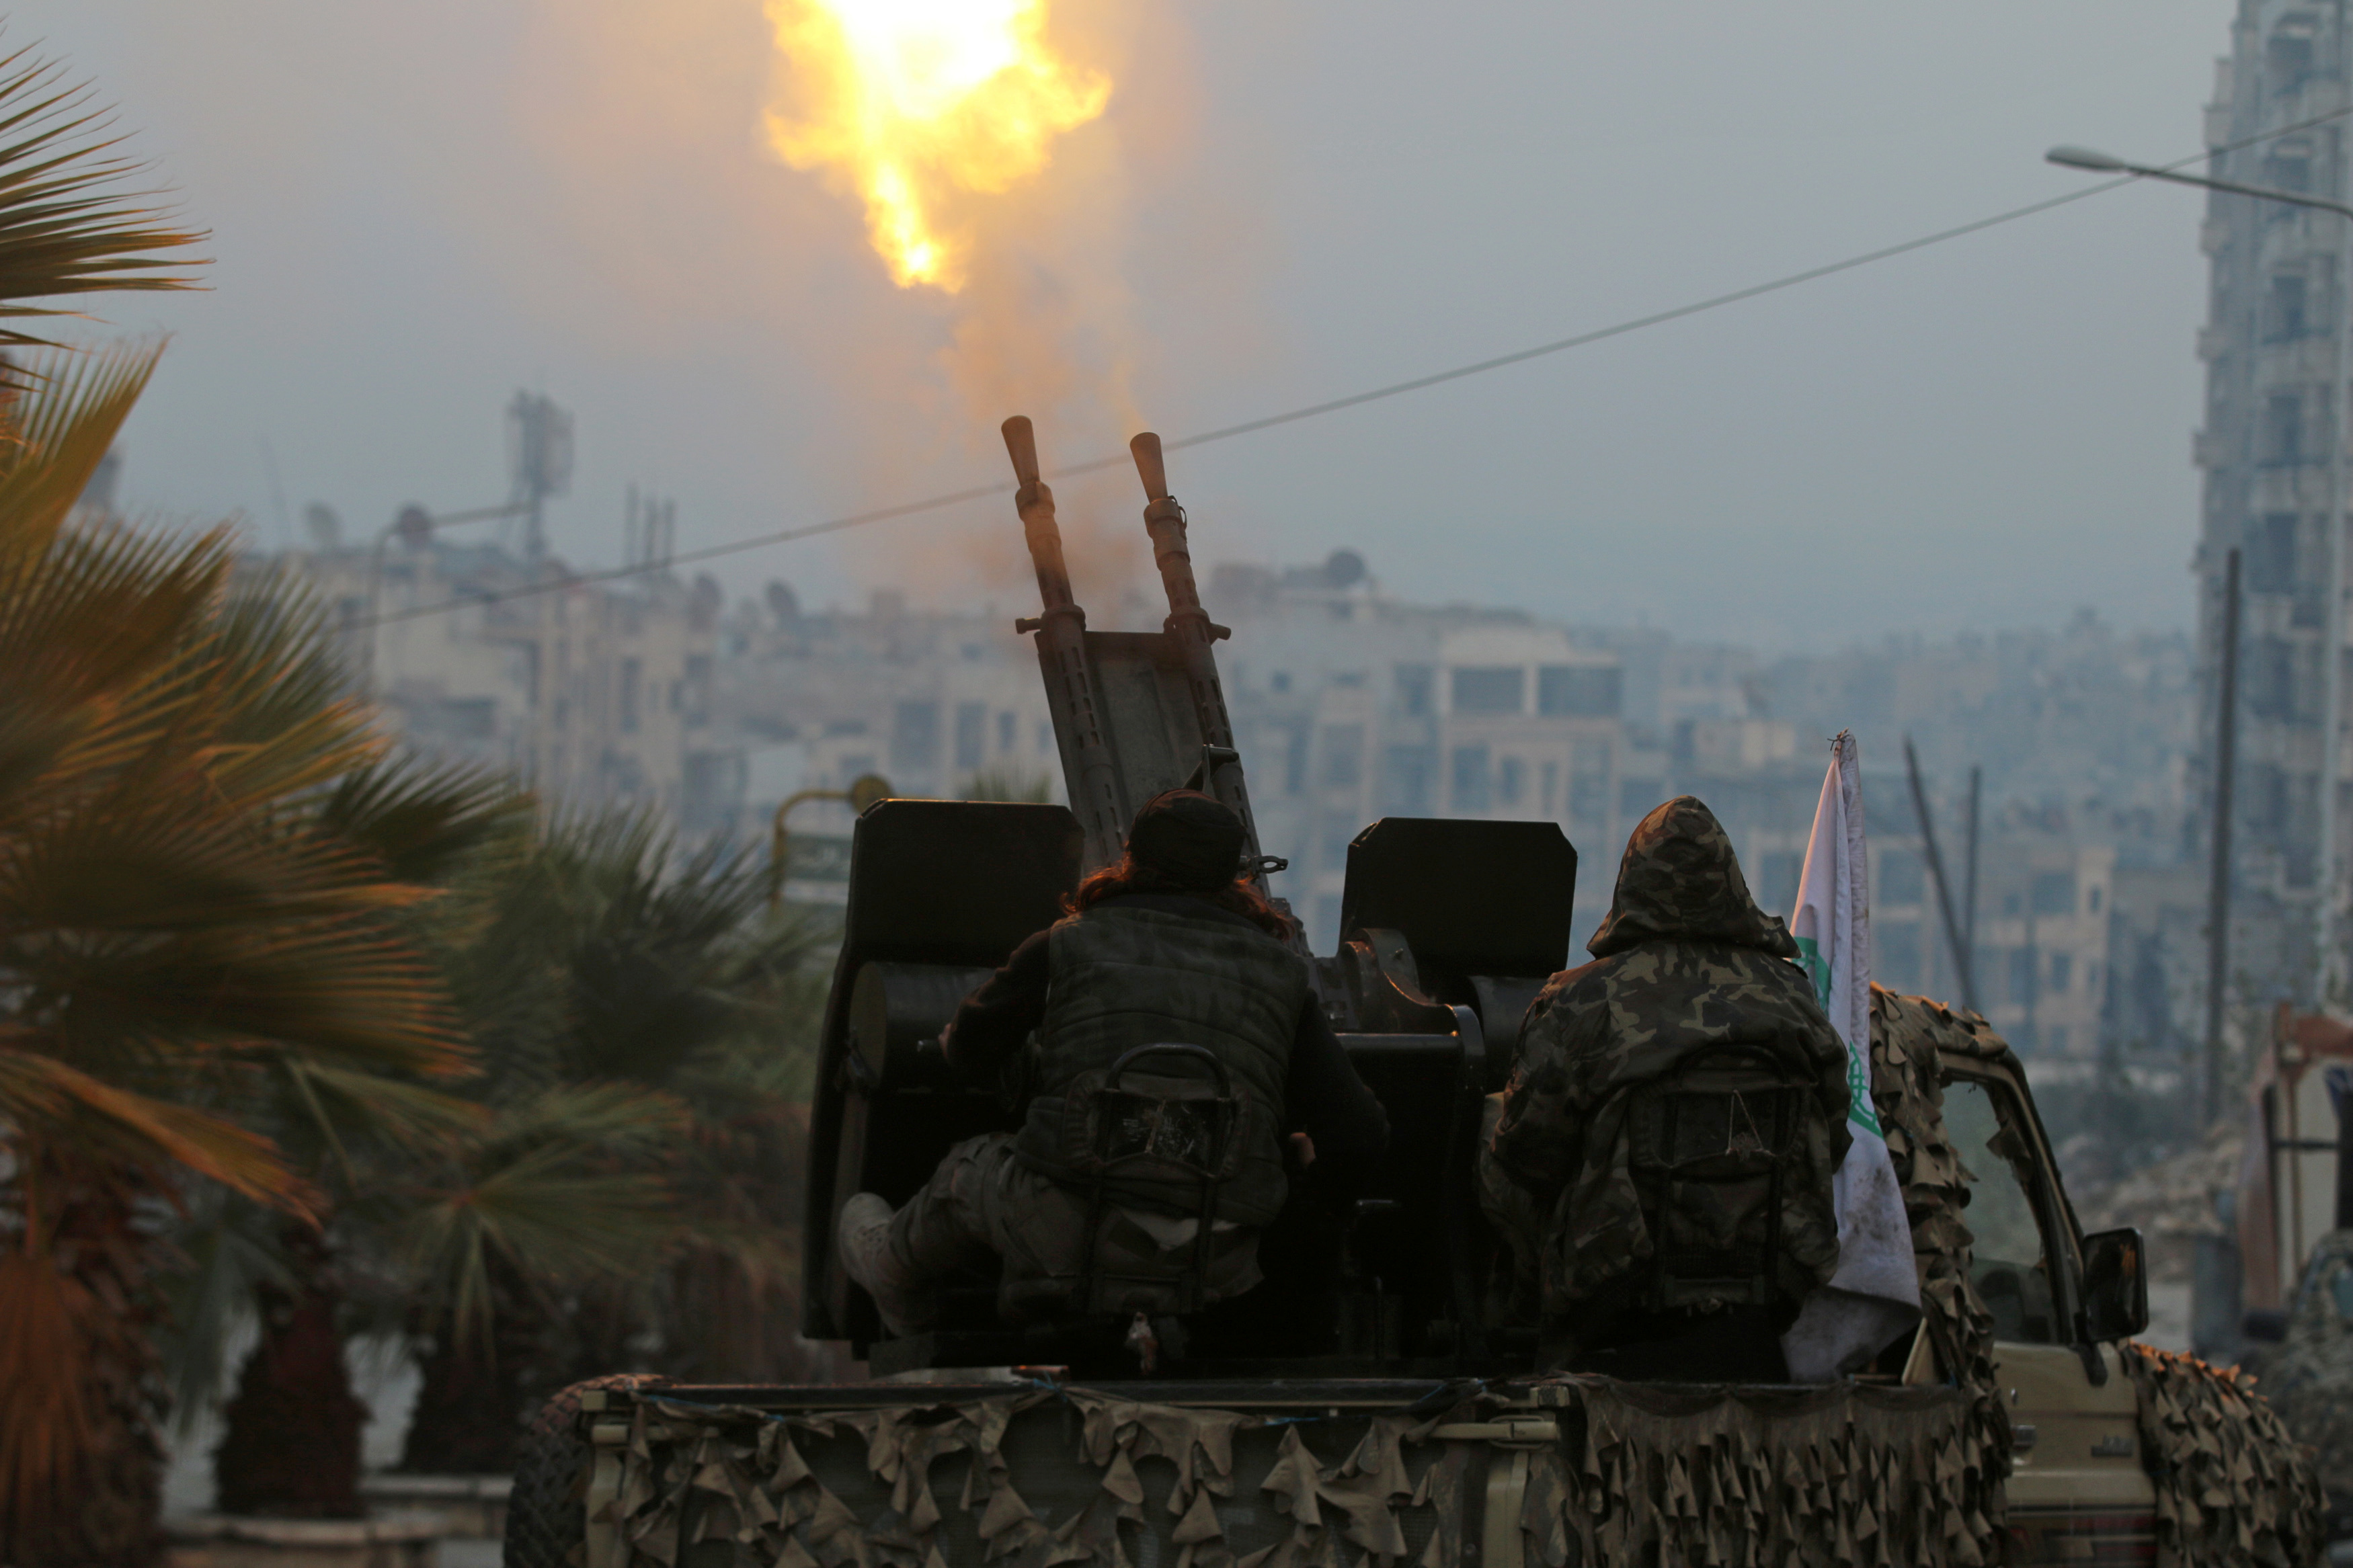 Free Syrian Army fighters fire an anti-aircraft weapon in a rebel-held area of Aleppo, Syria.